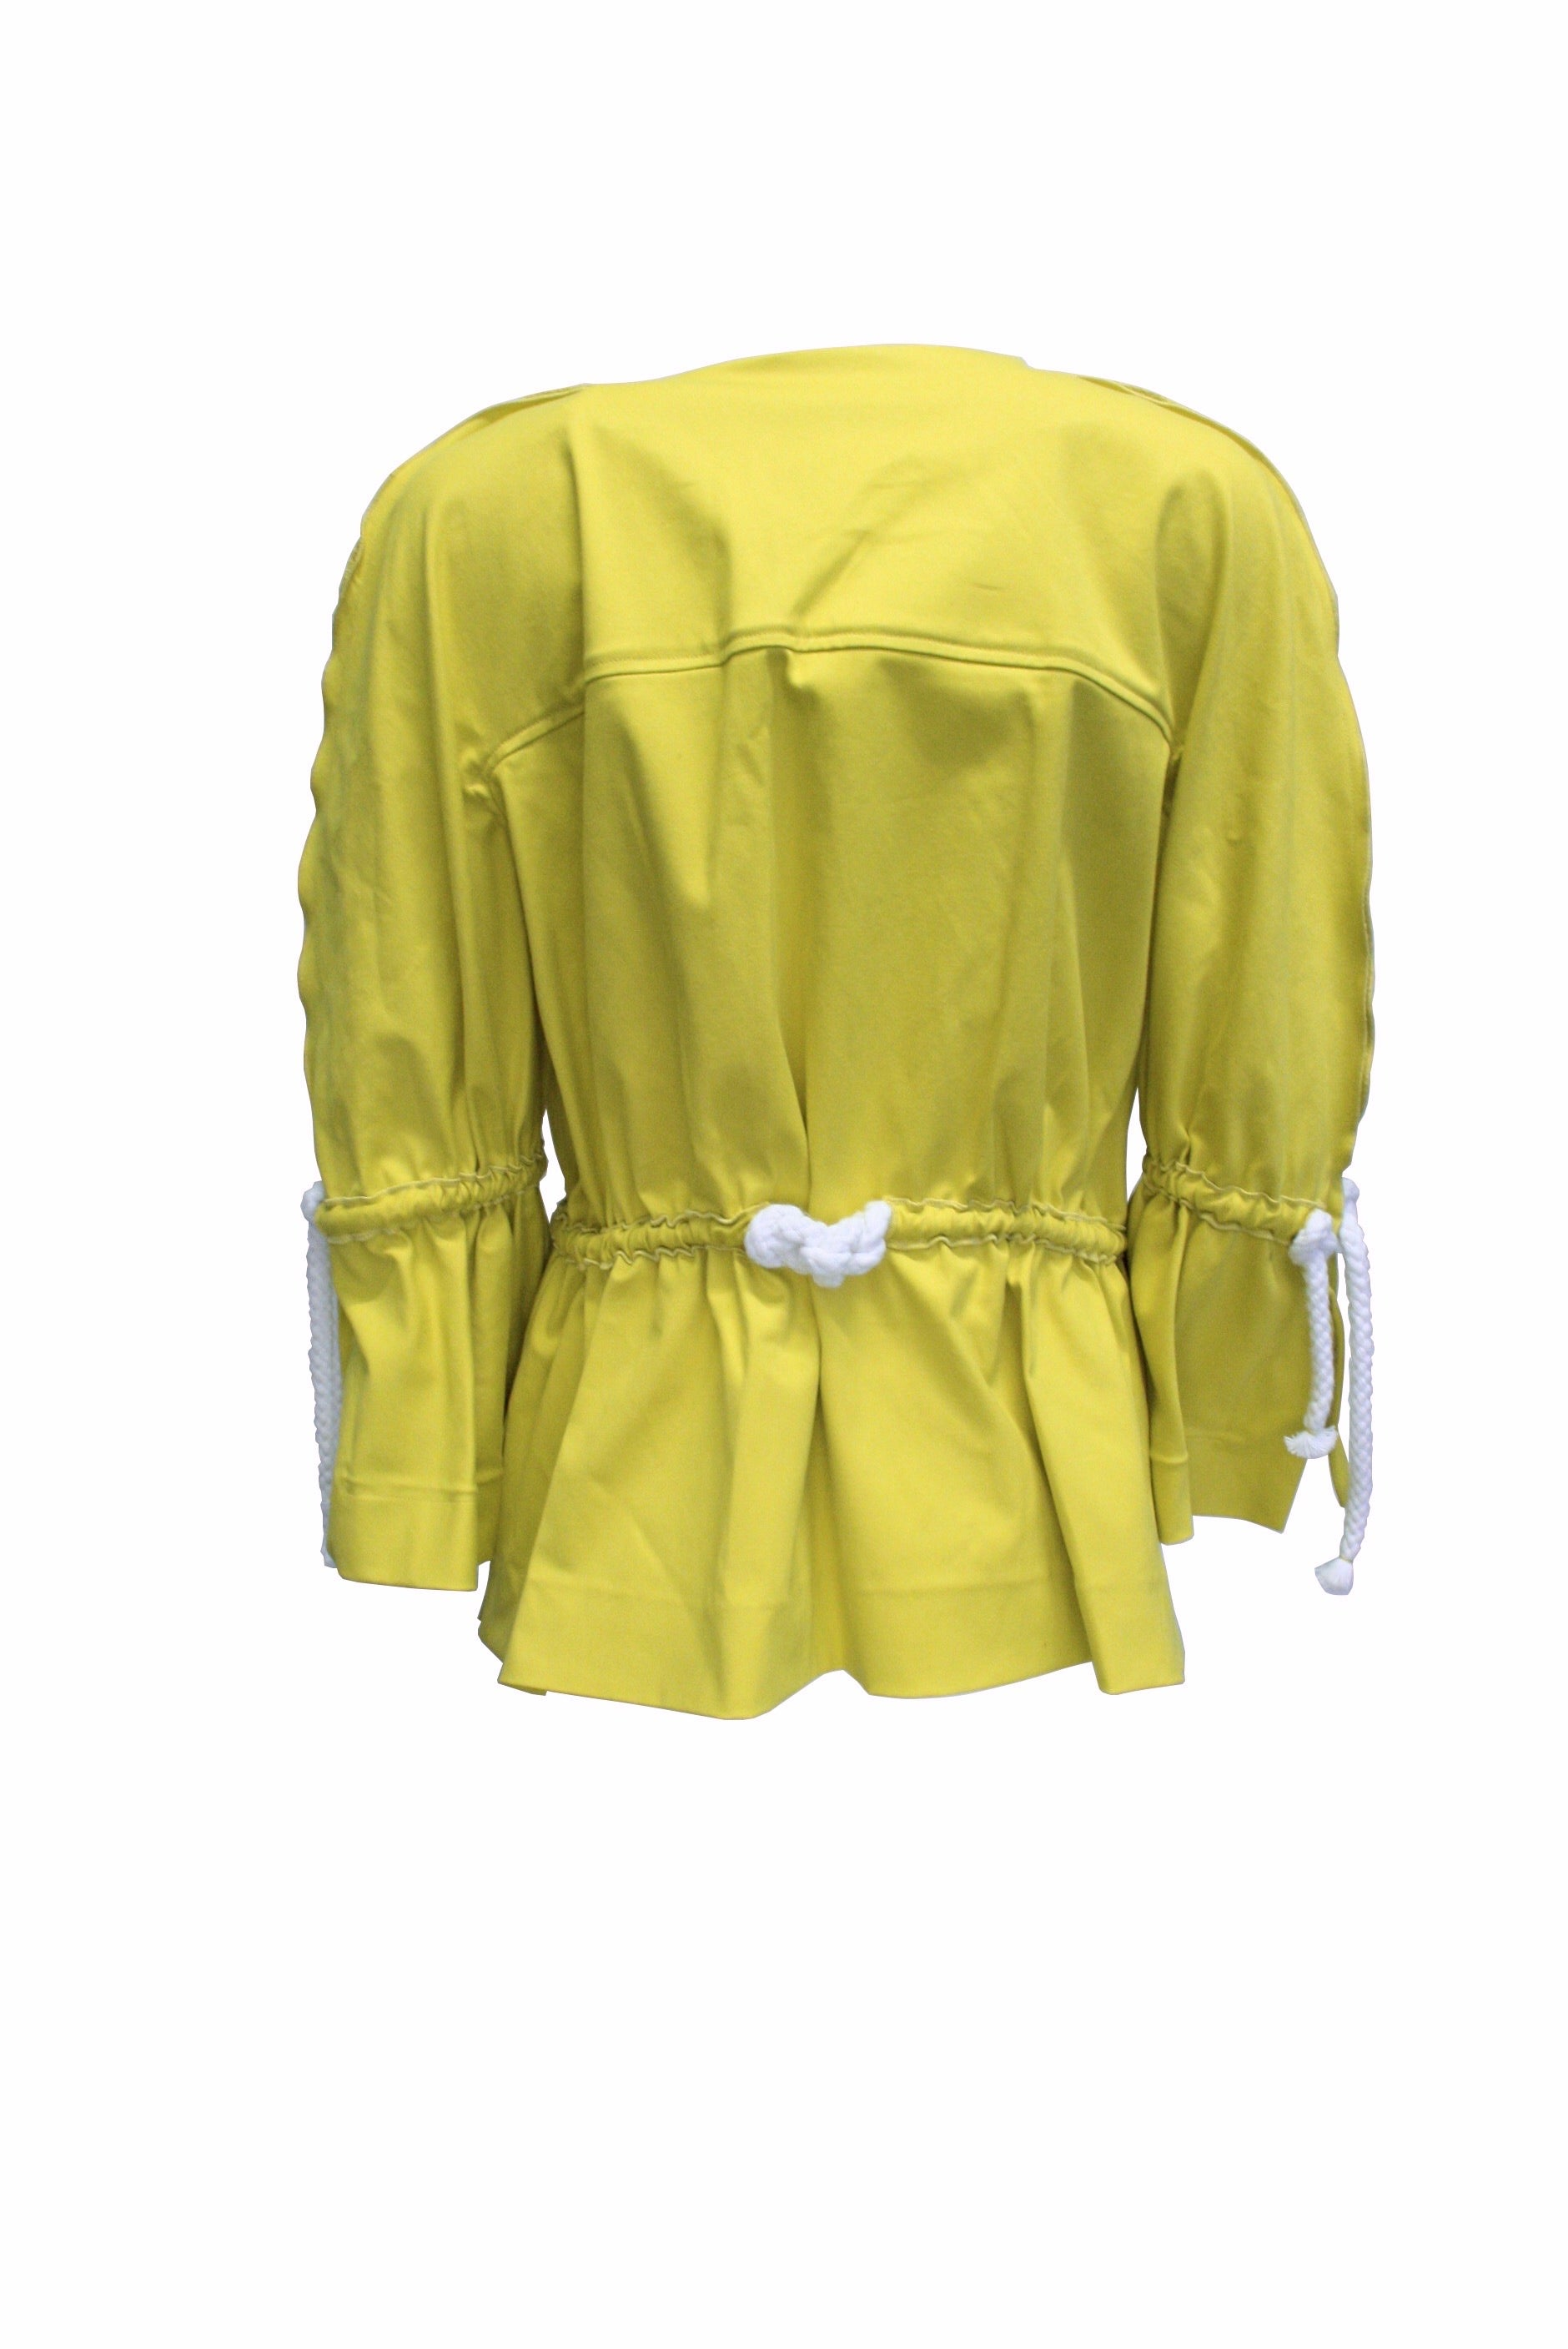 Acid Yellow Denim Short Jacket